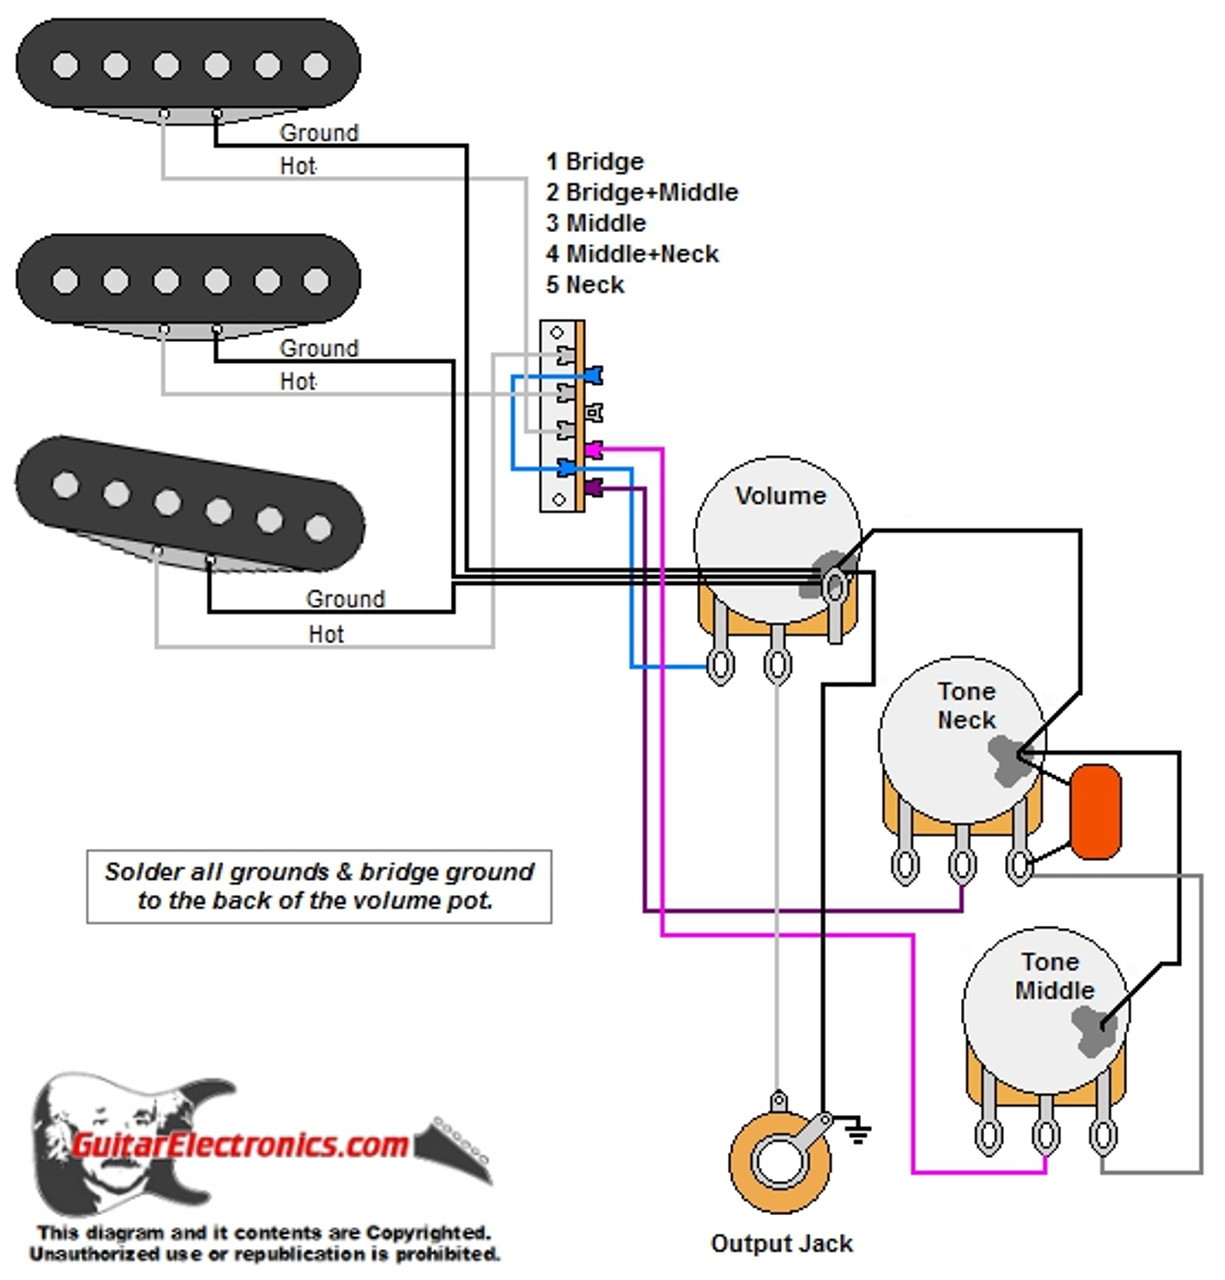 Wiring Diagram For Bass Guitar: Wiring Diagram Fender - Wiring Diagram Inforh:8.mder.mutterkind-apotheke-goettingen.de,Design